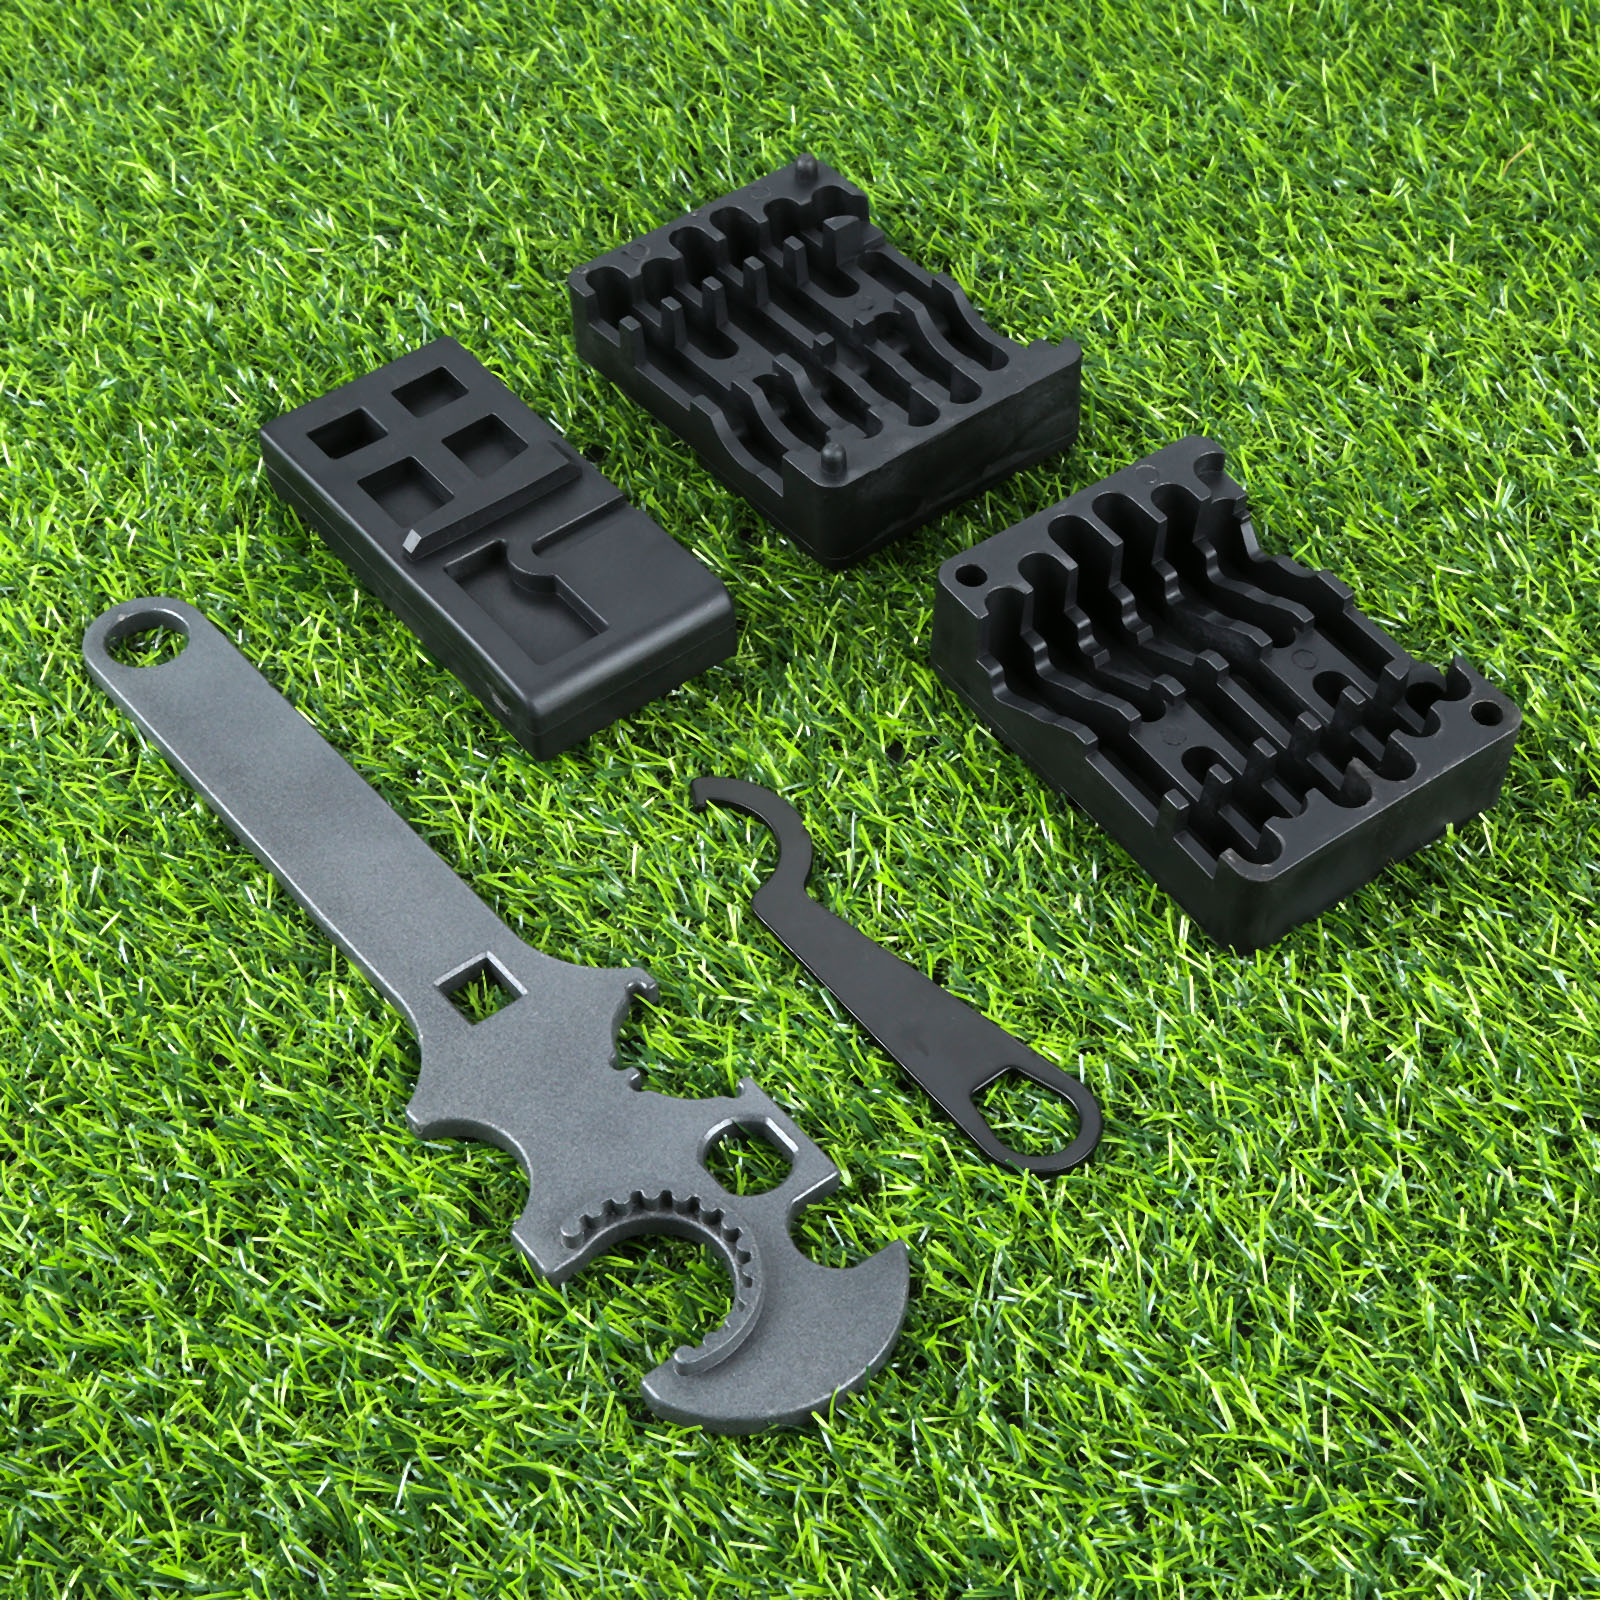 Tactical Professional 4pcs Set Lower Upper Vise Block Wrench Tool AR15 Strong Portable Outdoor Tools Hunting